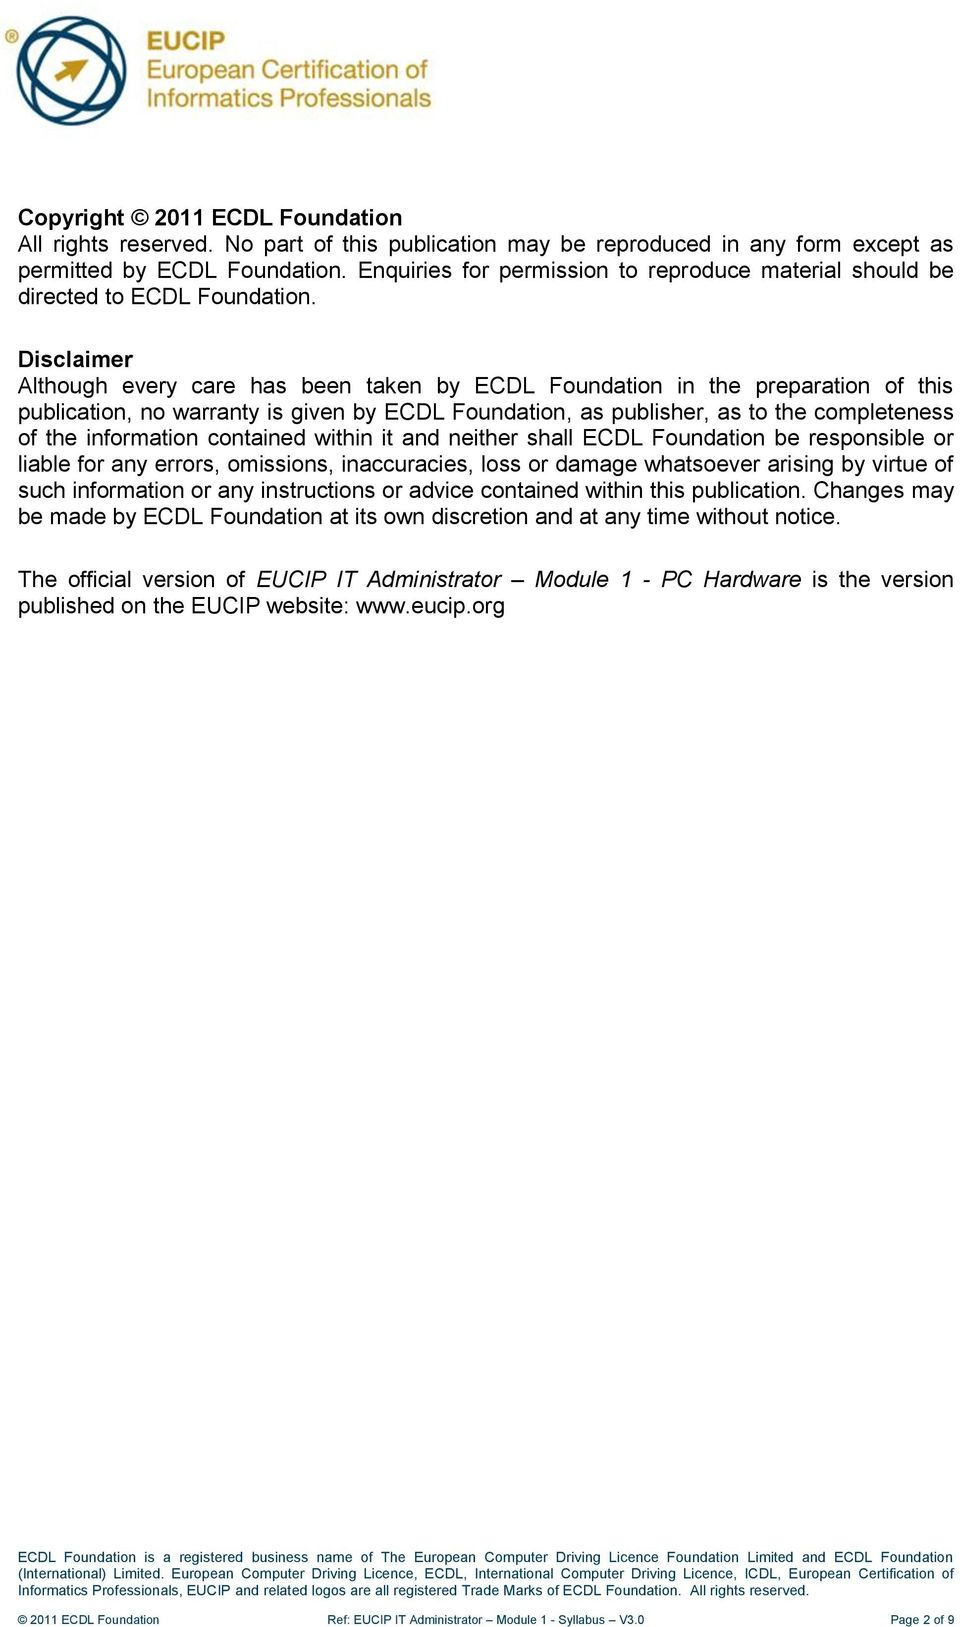 Disclaimer Although every care has been taken by ECDL Foundation in the preparation of this publication, no warranty is given by ECDL Foundation, as publisher, as to the completeness of the